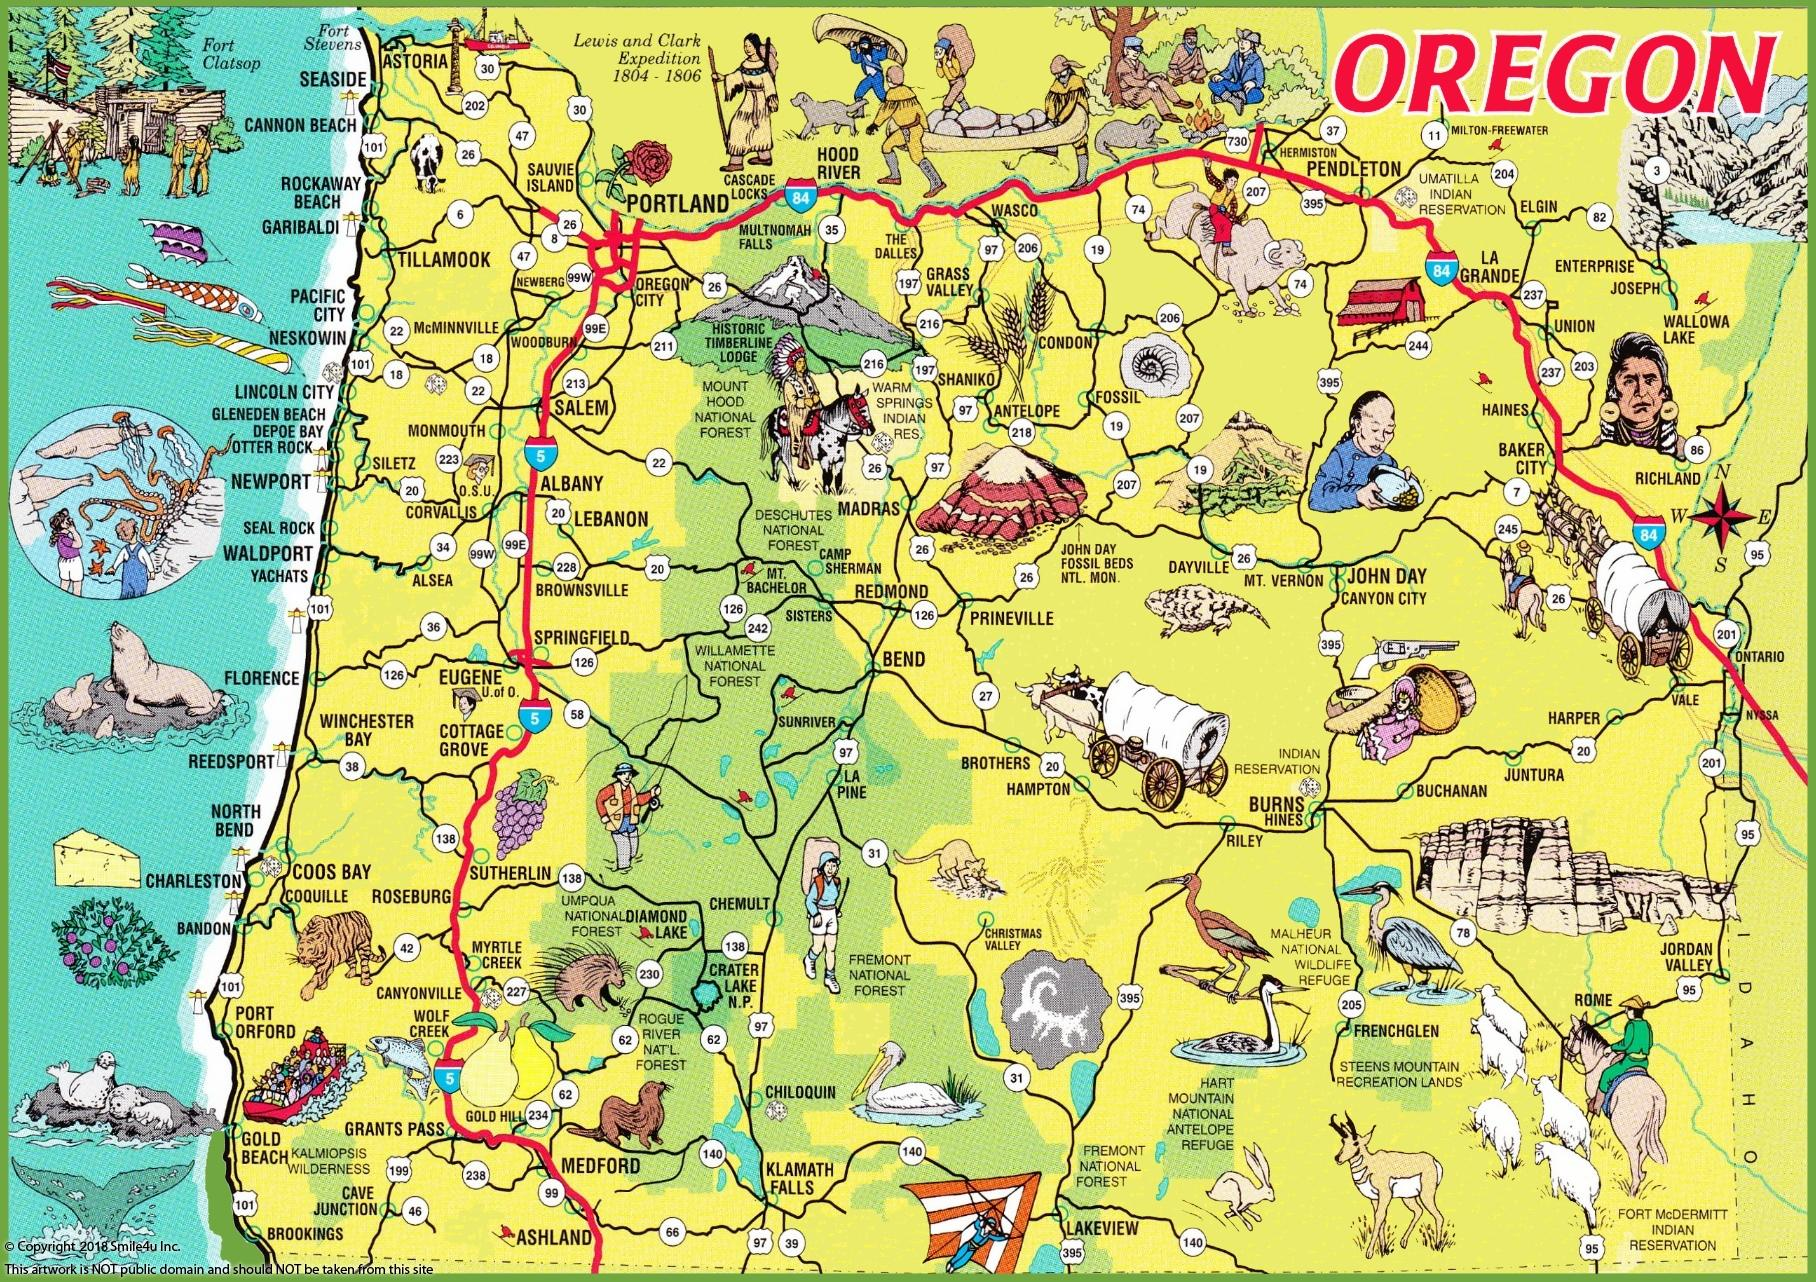 237695_watermarked_pictorial-travel-map-of-oregon.jpg